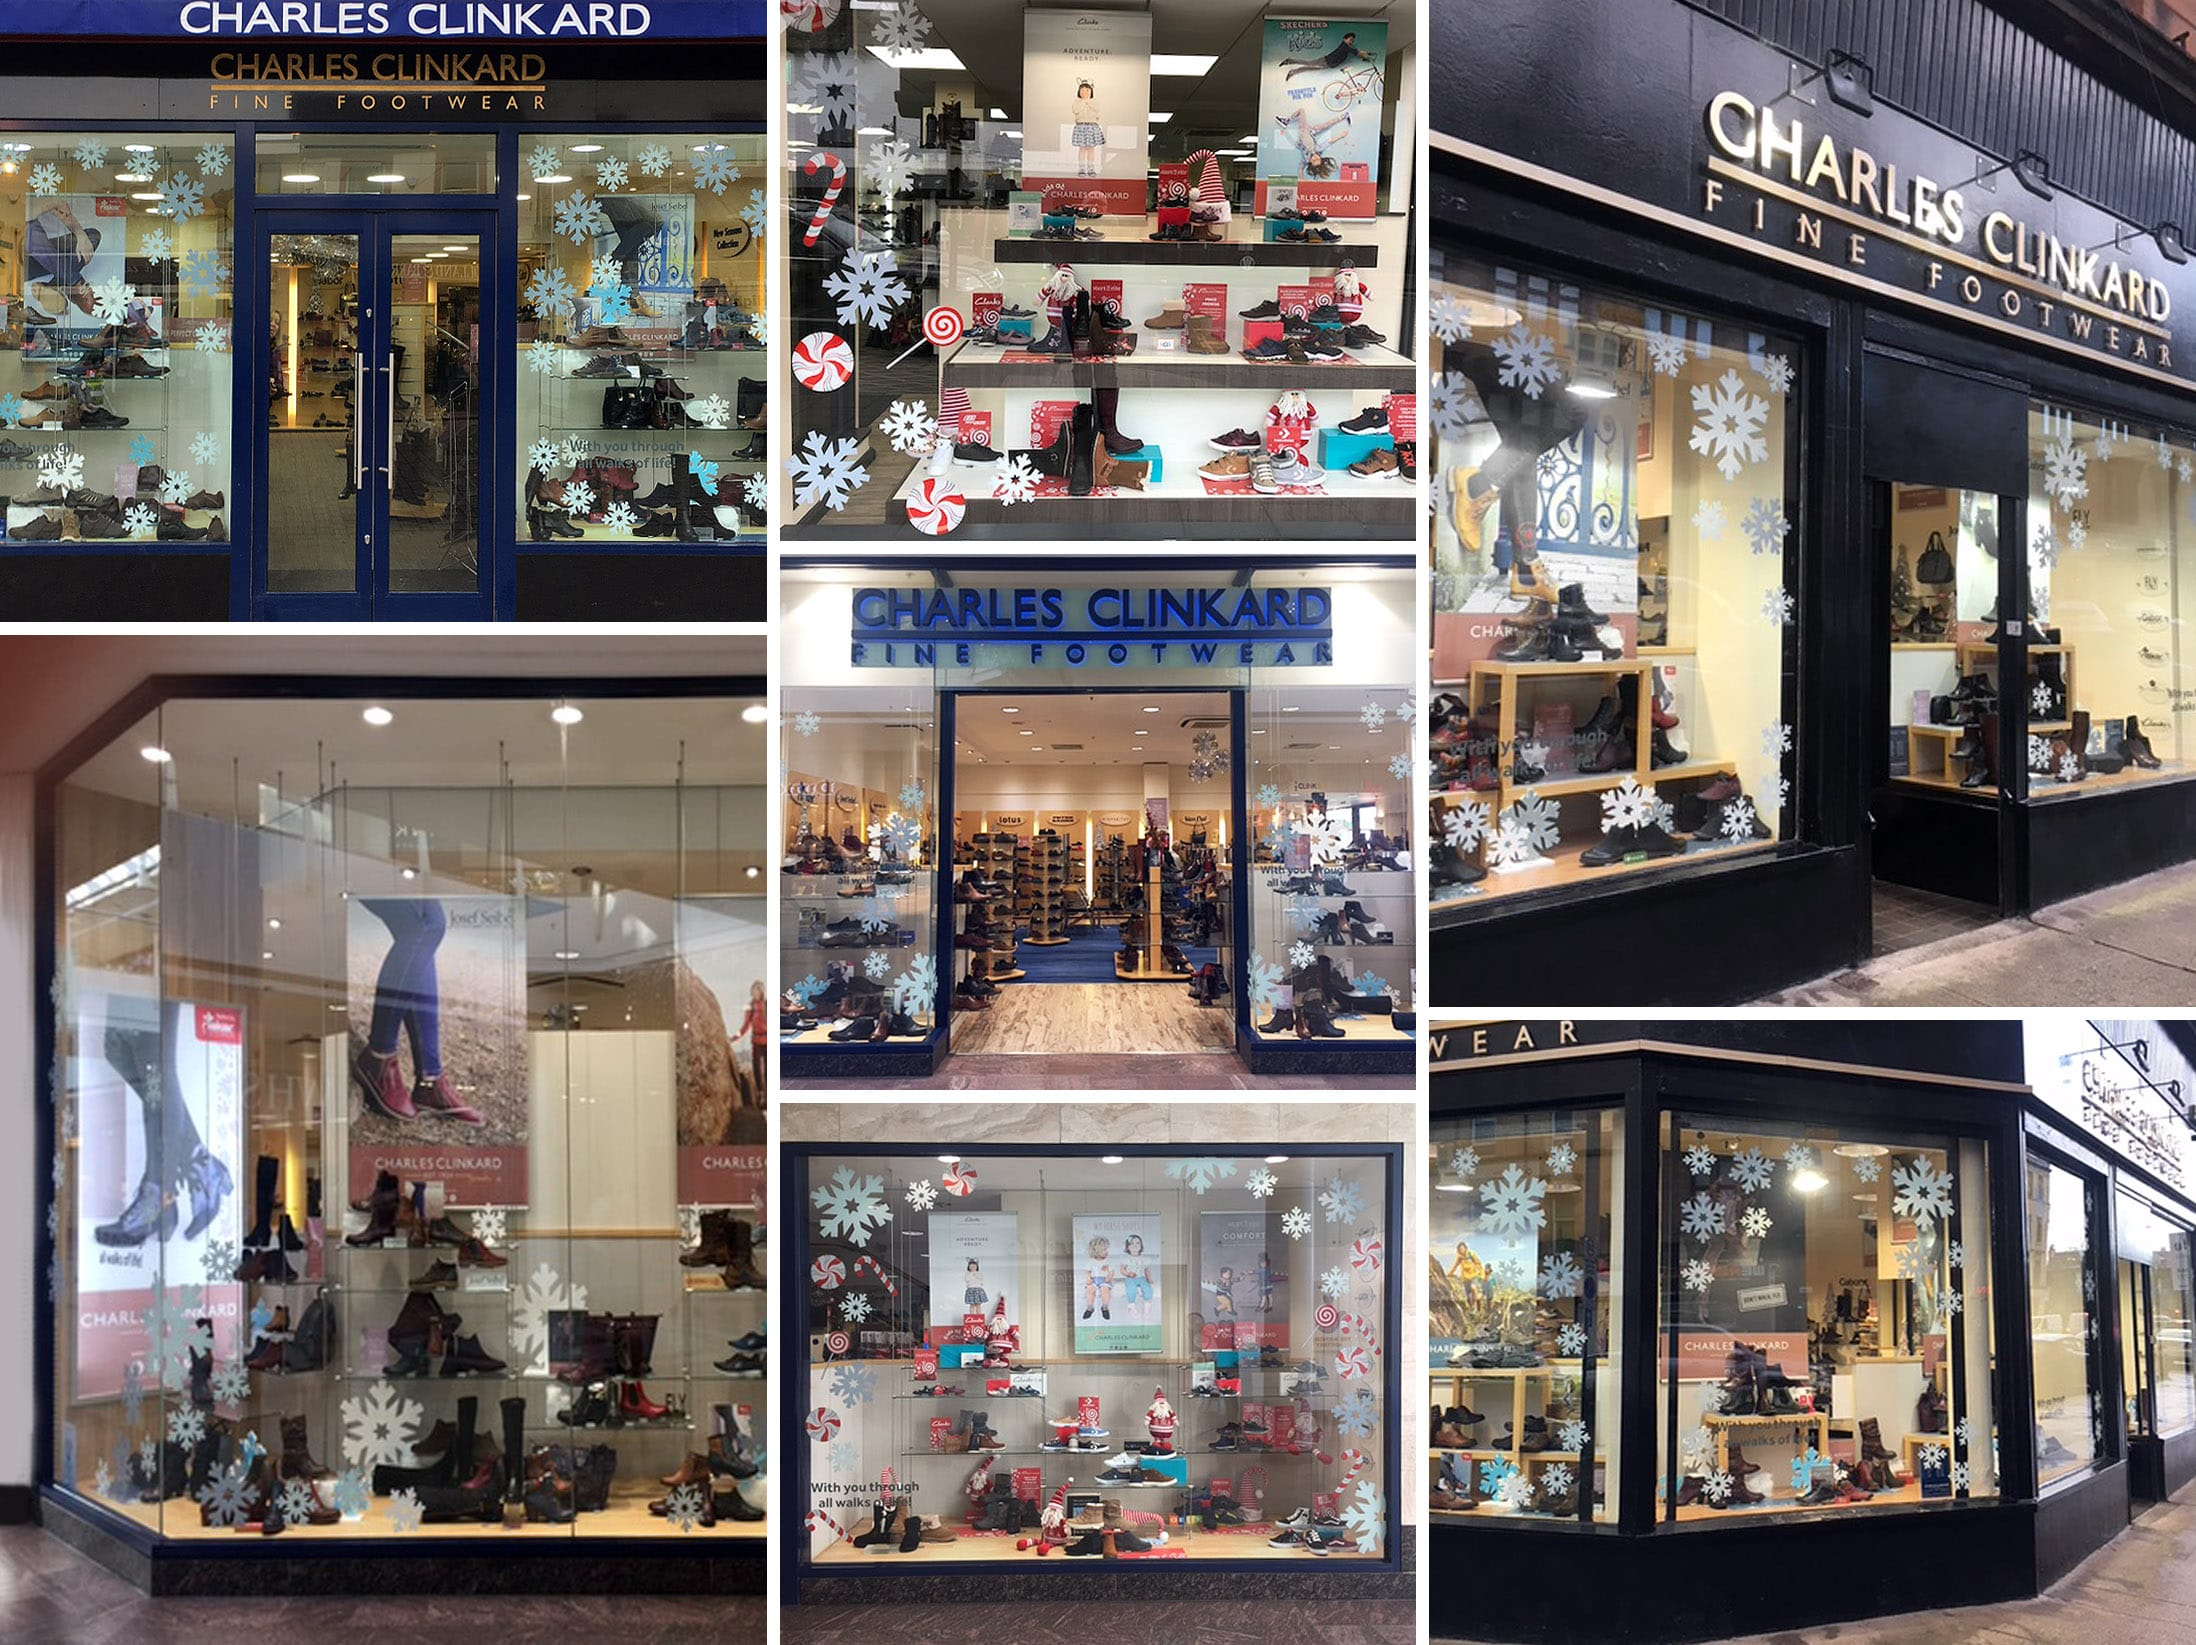 6b6ad10e737 Find Out What Christmas Events Are Taking Place Near Your Local Charles  Clinkard Store…